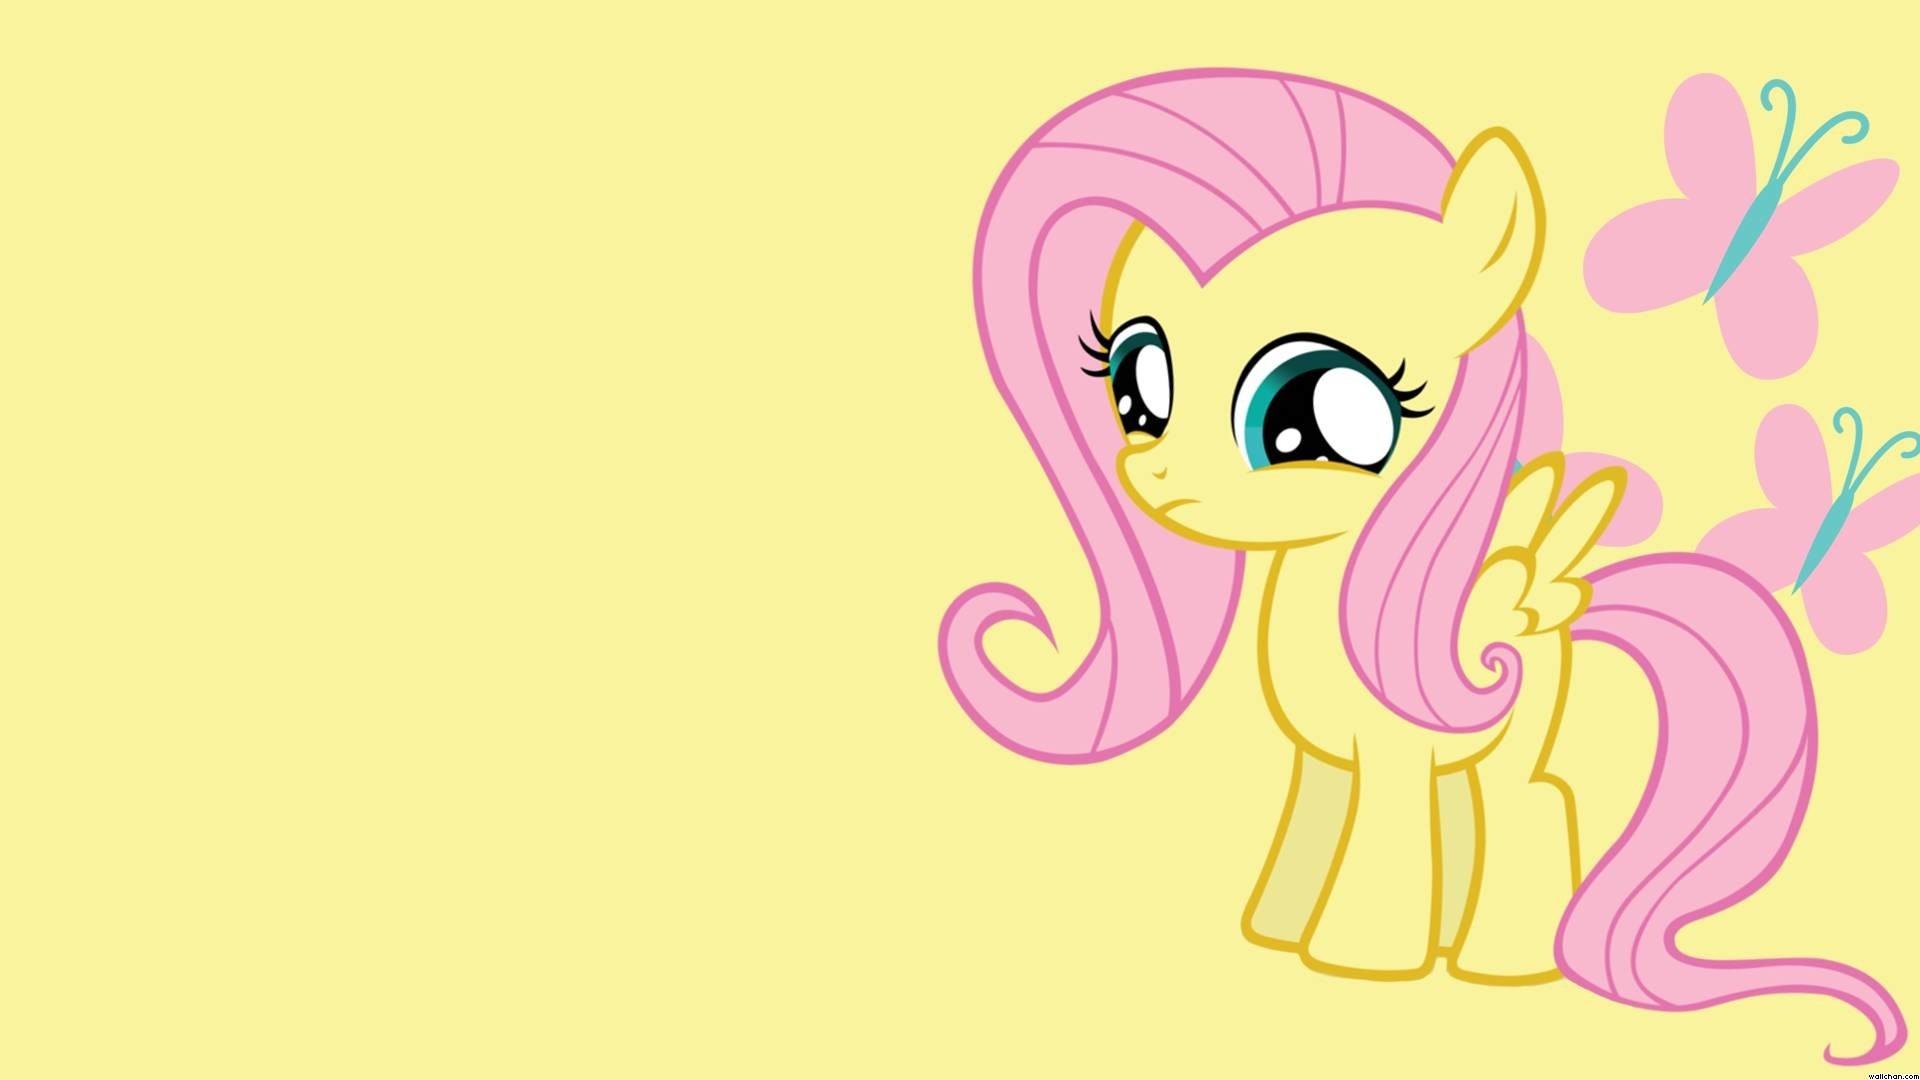 1920x1080 Pony Wallpapers - My Little Pony Friendship is Magic Wallpaper .